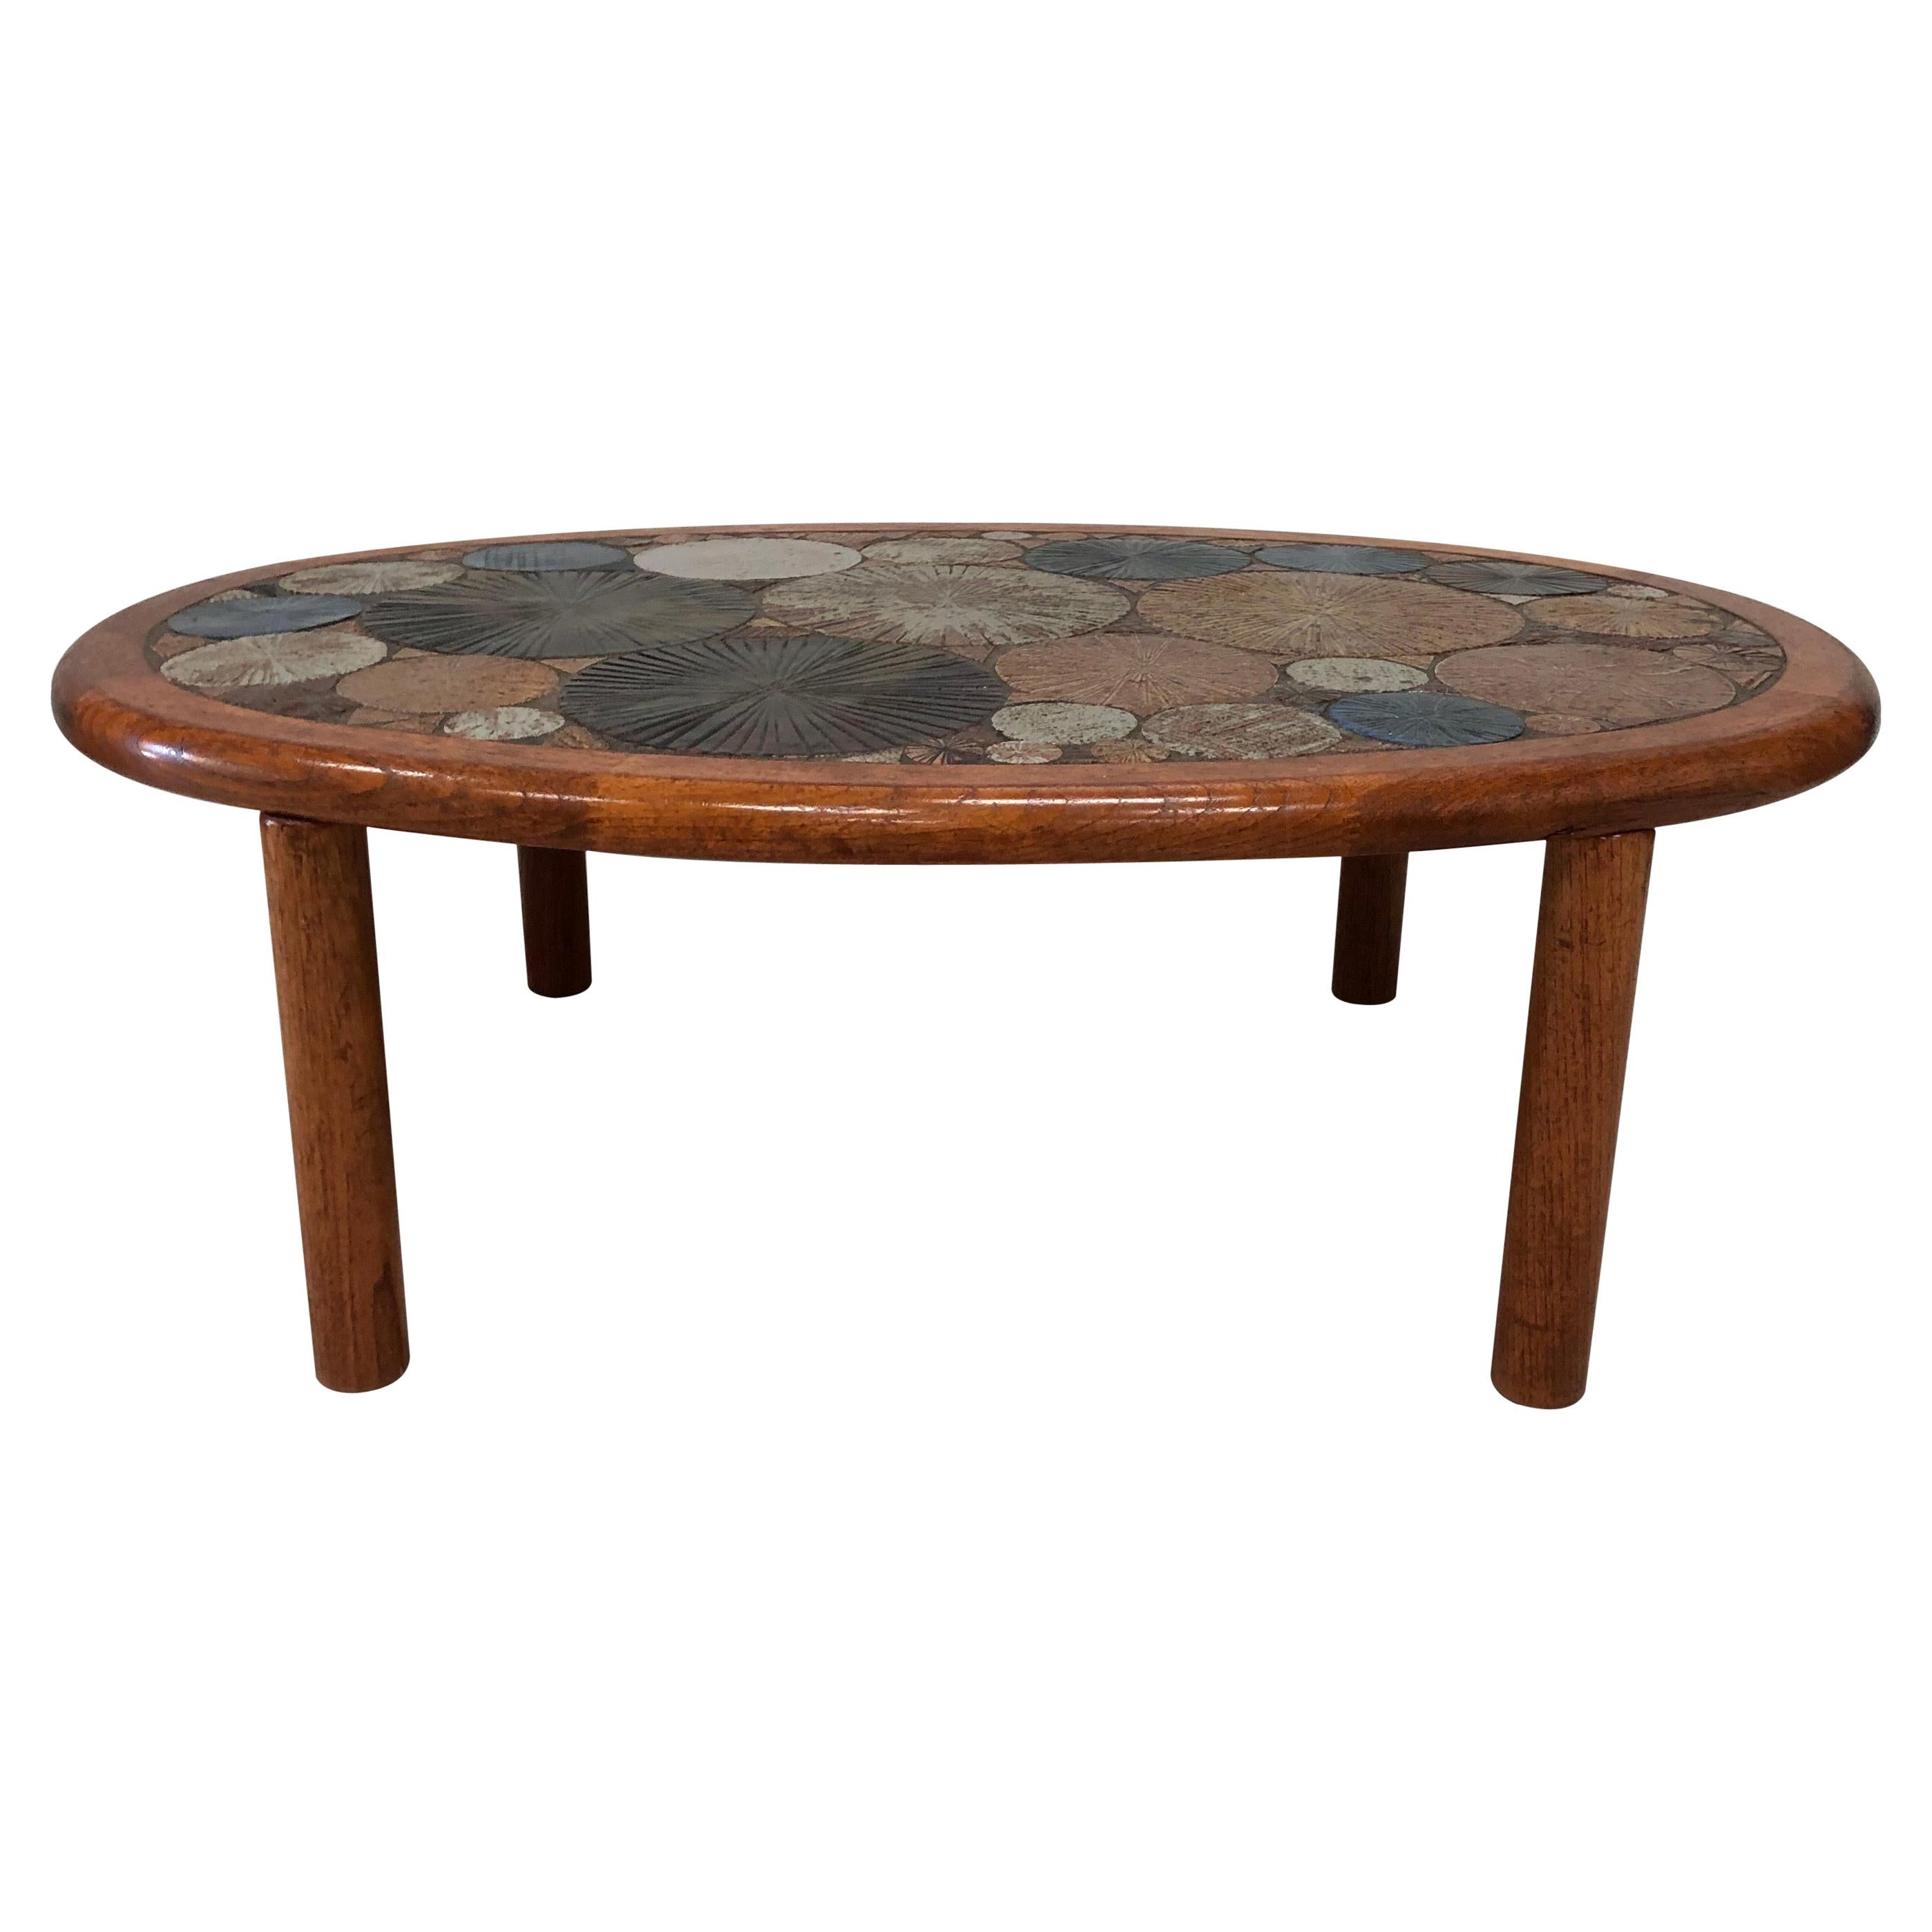 Tue Poulsen Haslev Denmark Oval Teak and Ceramic Art Coffee Table, 1960s